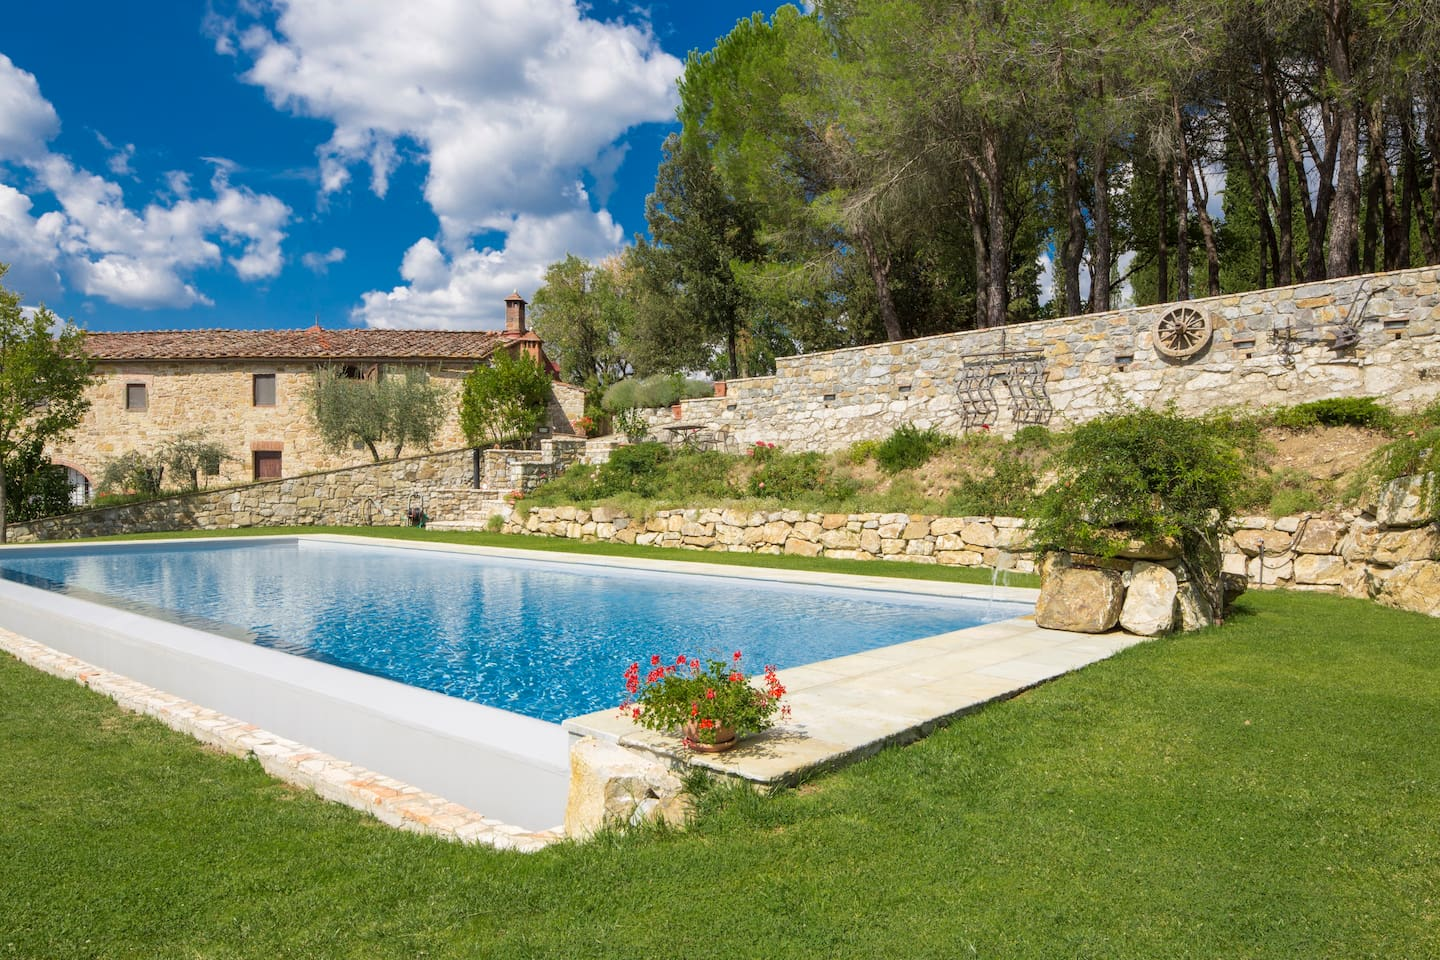 The villa overlooks the eternity pool with salt system shared with the owners